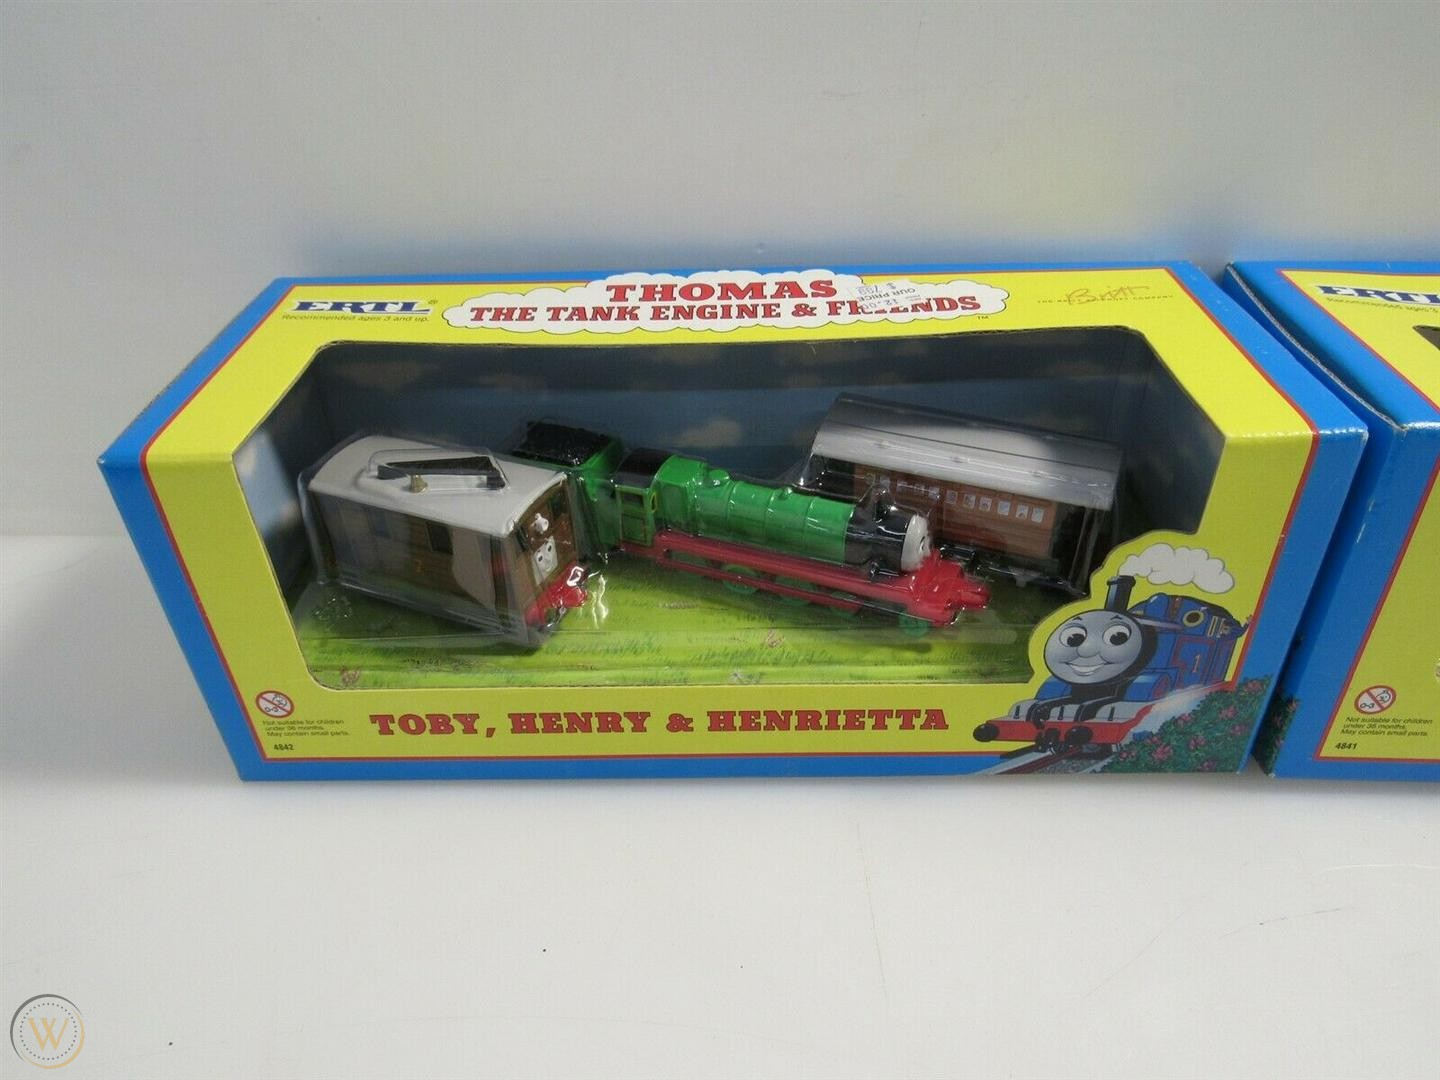 Toby, Henry and Henrietta